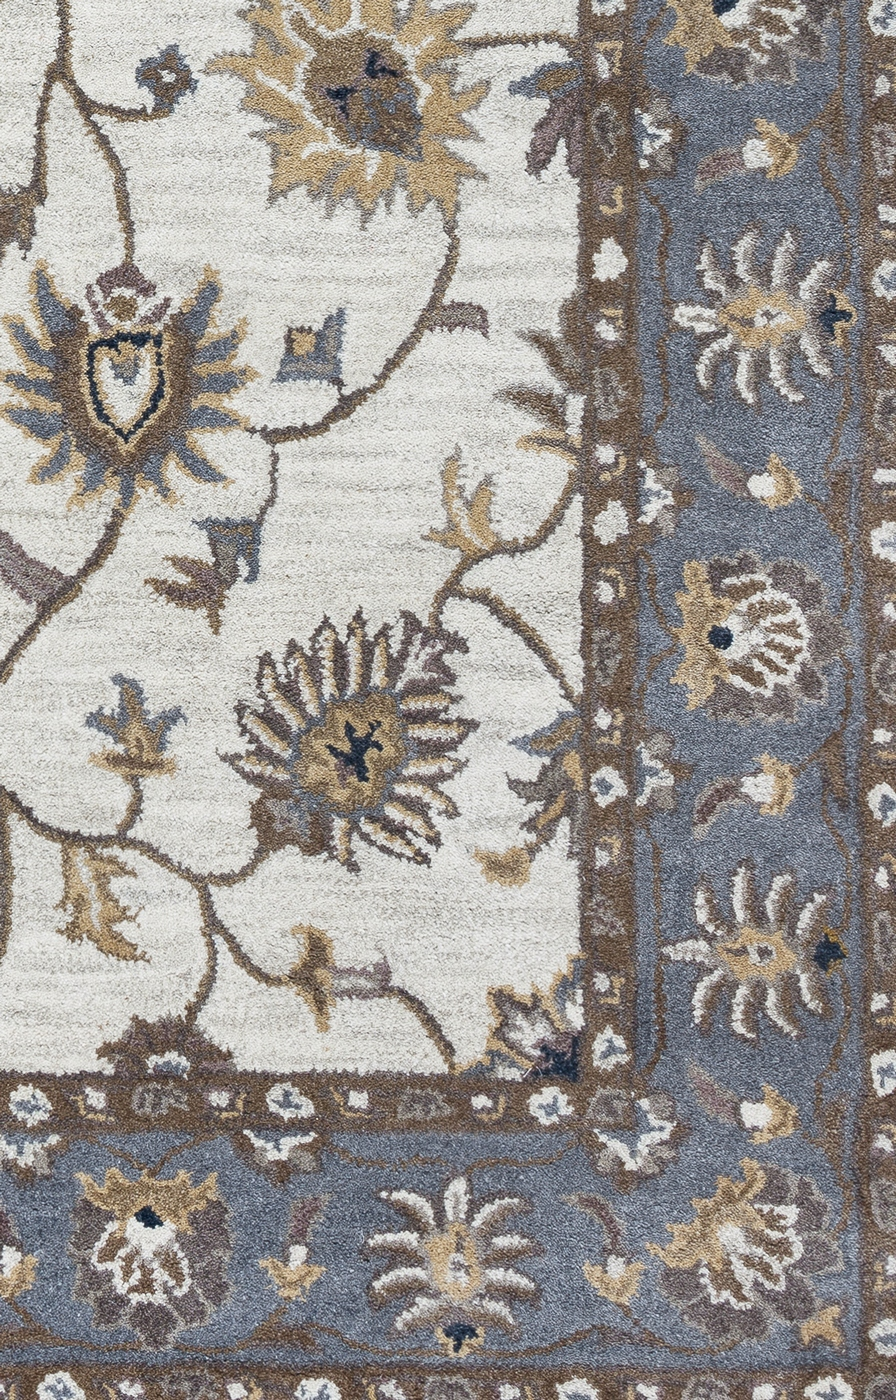 valintino floral vine border wool runner rug in taupe blue brown 2 39 6 x 8 39. Black Bedroom Furniture Sets. Home Design Ideas